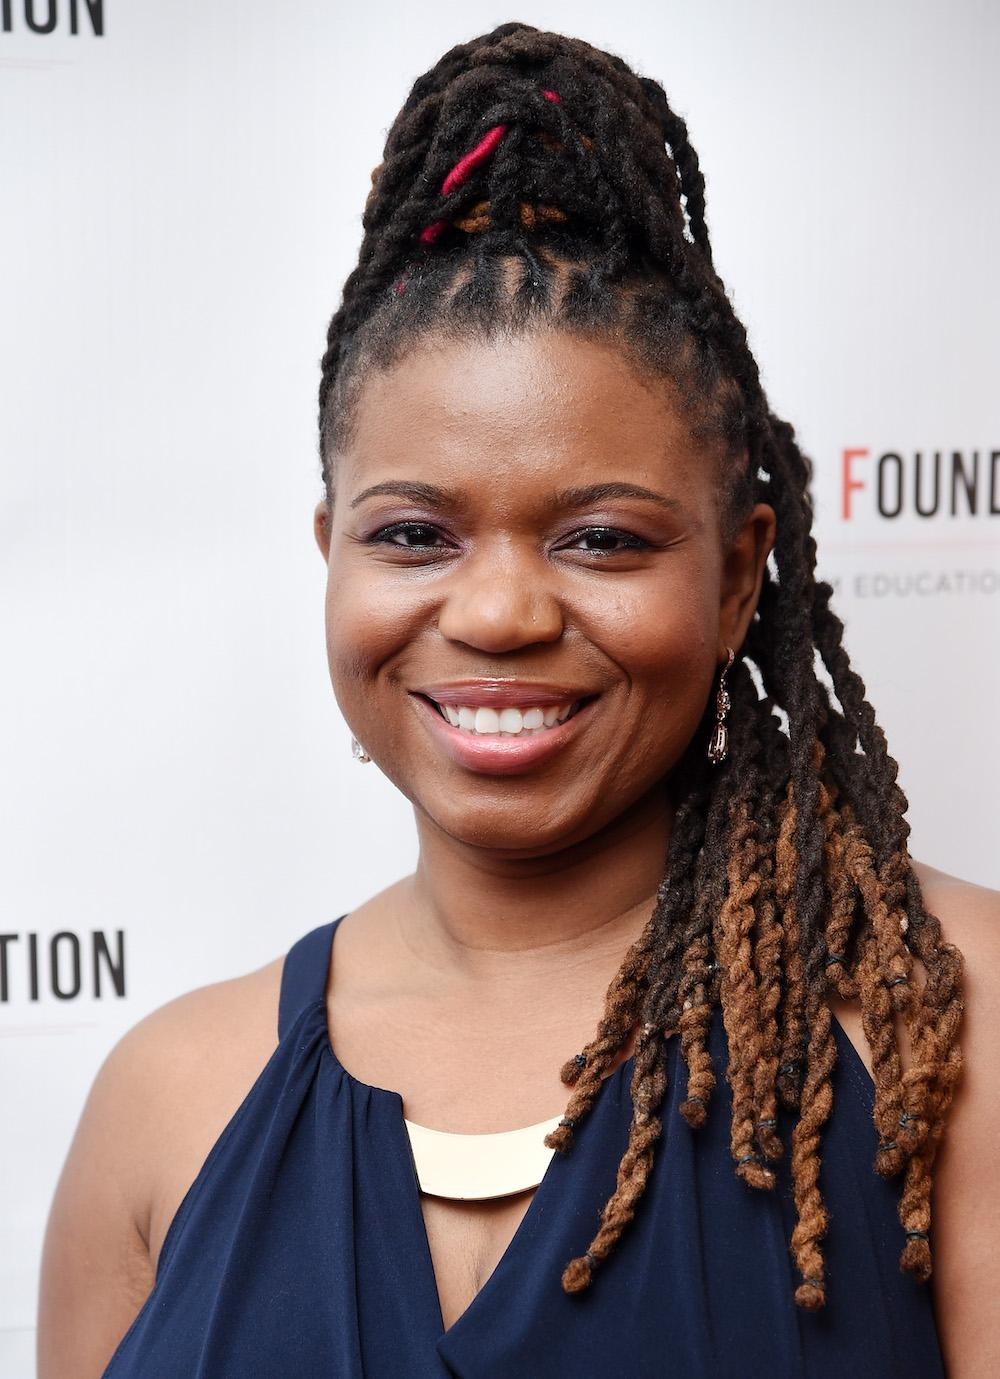 Playwright Katori Hall attends Arthur Miller - One Night 100 Years Benefit at Lyceum Theatre on January 25, 2016 in New York City. (Photo by Dimitrios Kambouris/Getty Images)